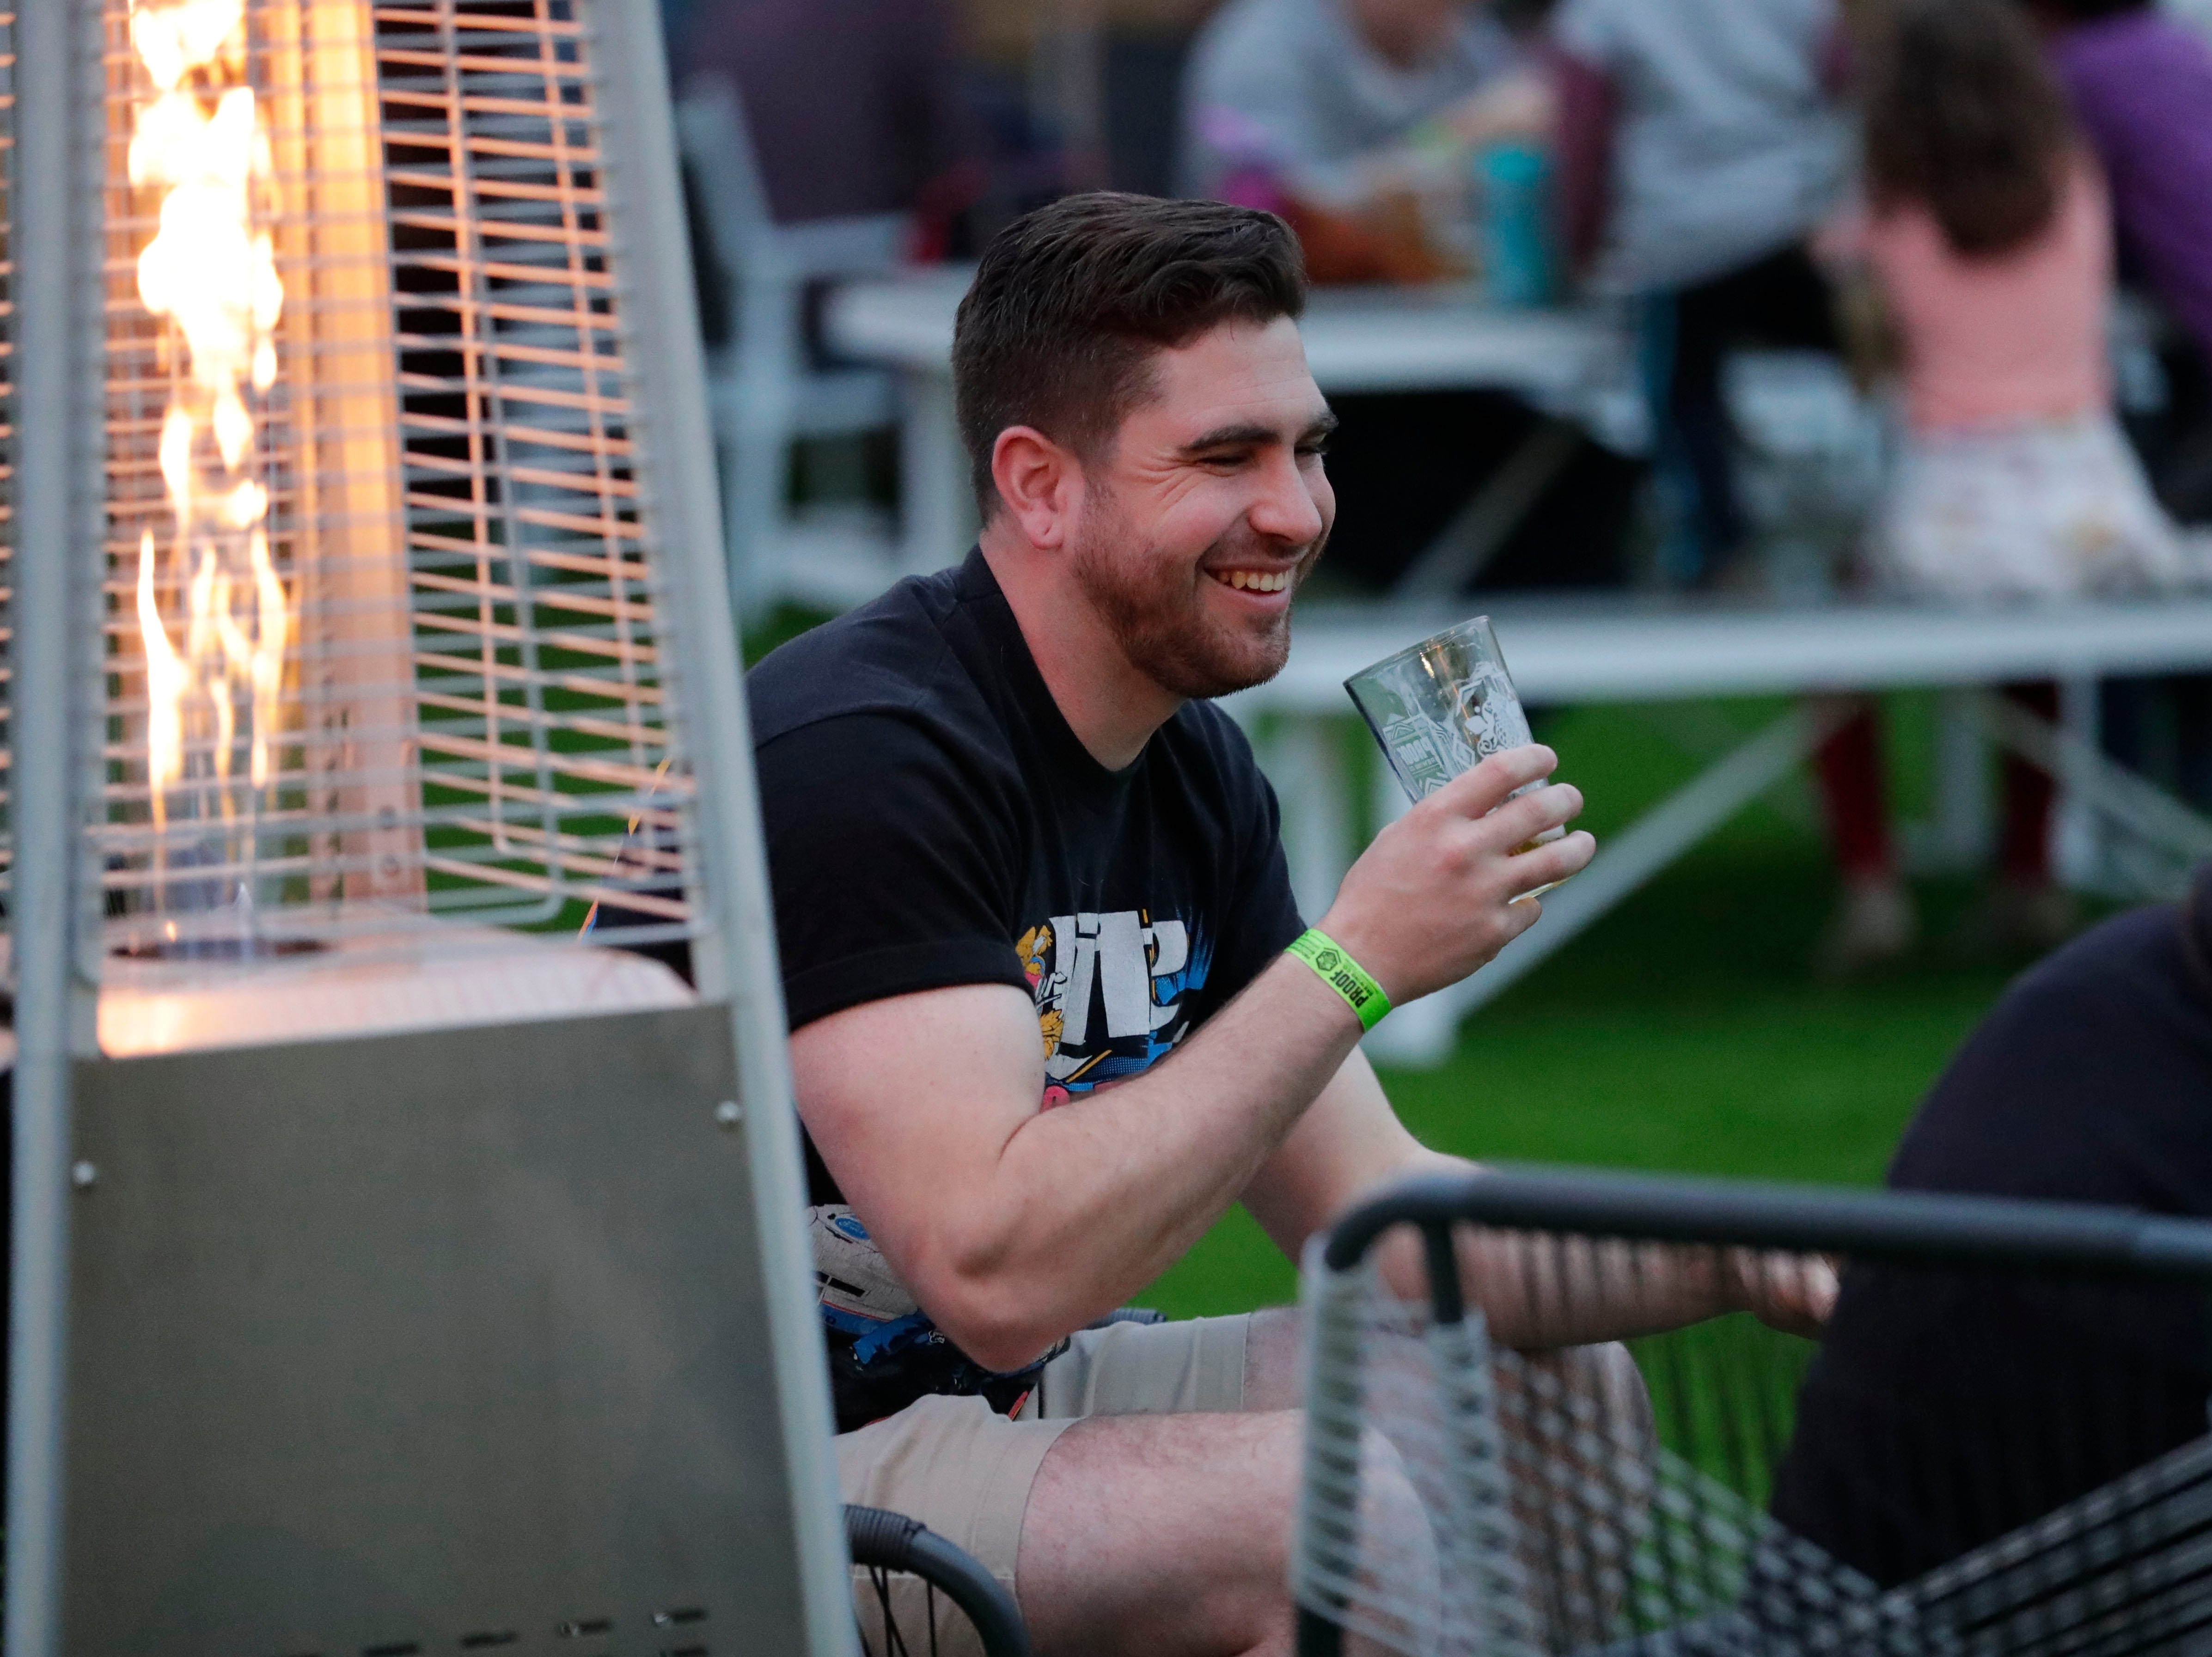 Irvine Leonard laughs while chatting with friends and enjoying his beer in the outdoor area of the new Proof Brewery during the brewery's soft opening, Friday, Feb. 1, 2019.